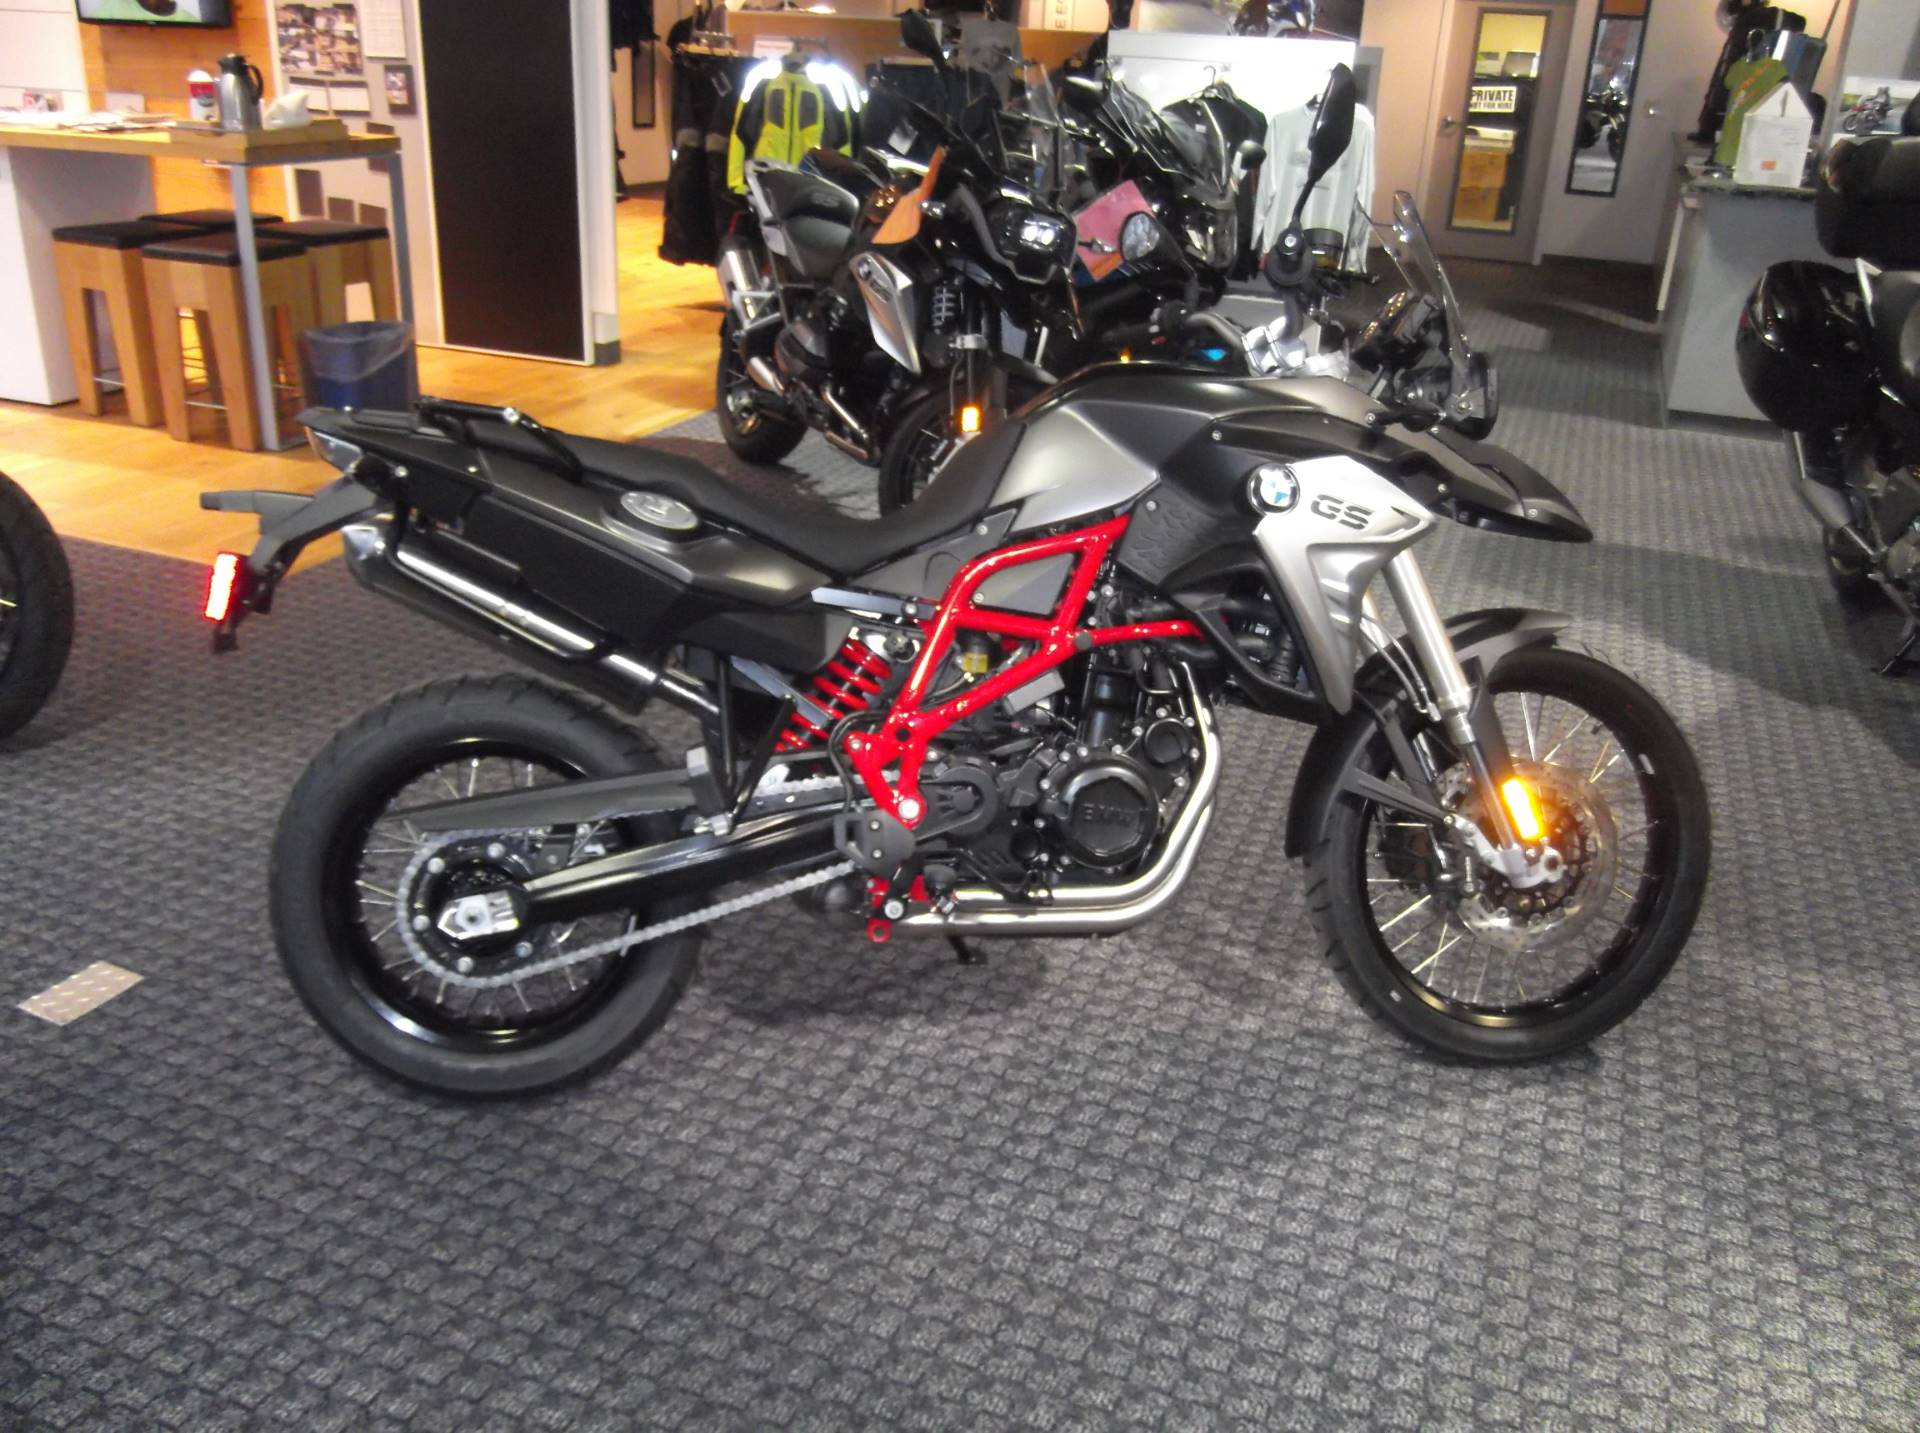 2017 BMW F800GS for sale 17825